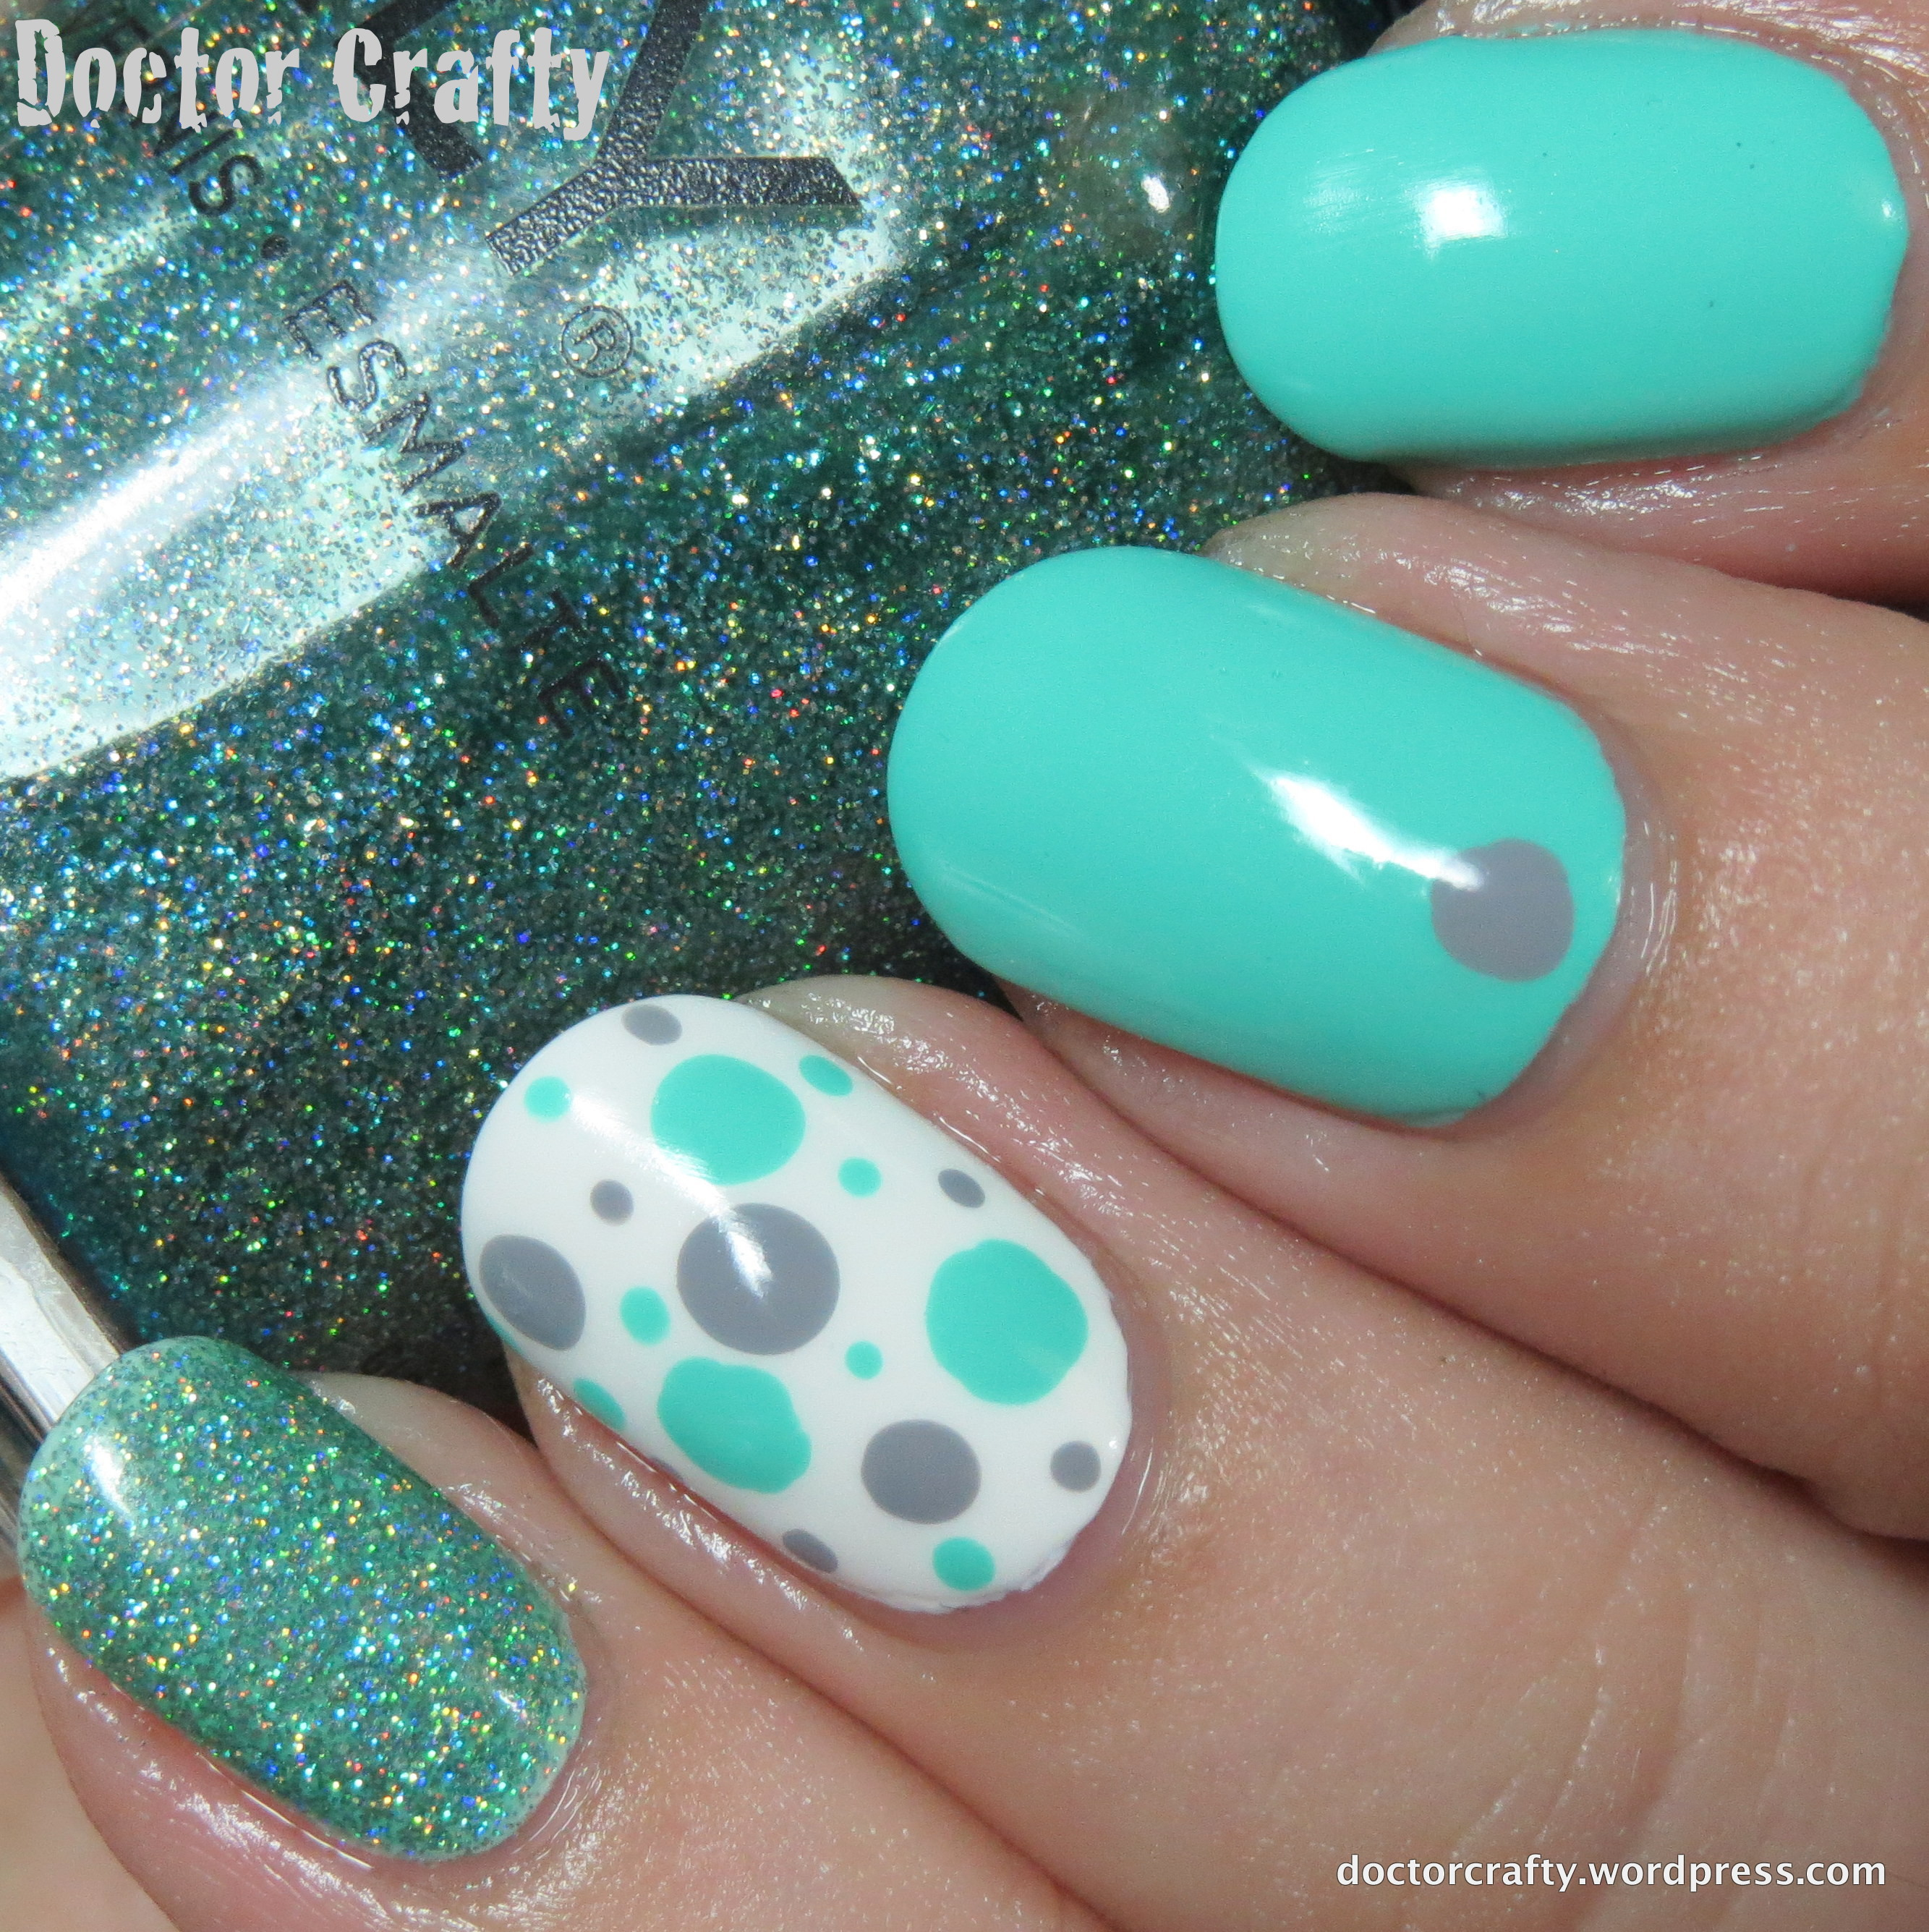 nail polish swatch | Doctor Crafty